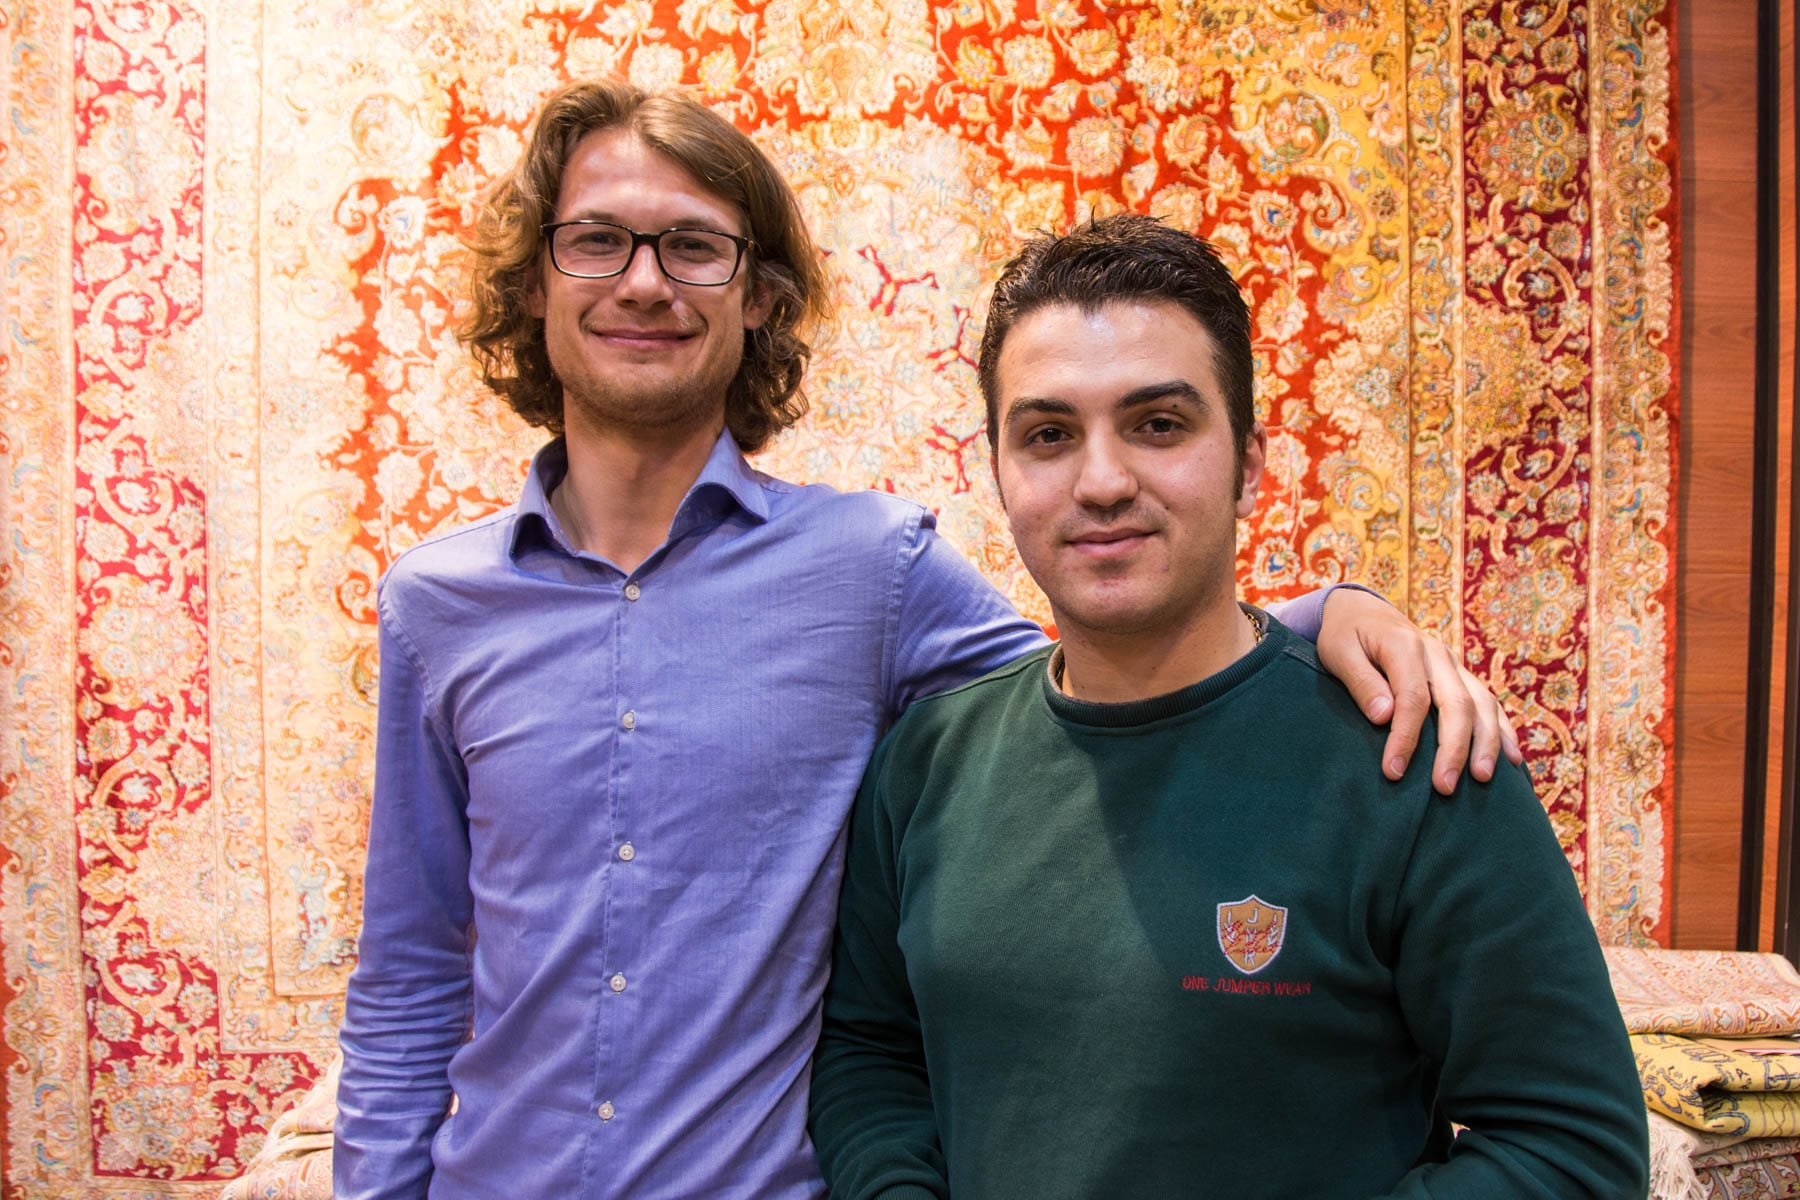 Sebastiaan and Bezhat, a local Tabrizian that made us feel welcome to Tabriz.